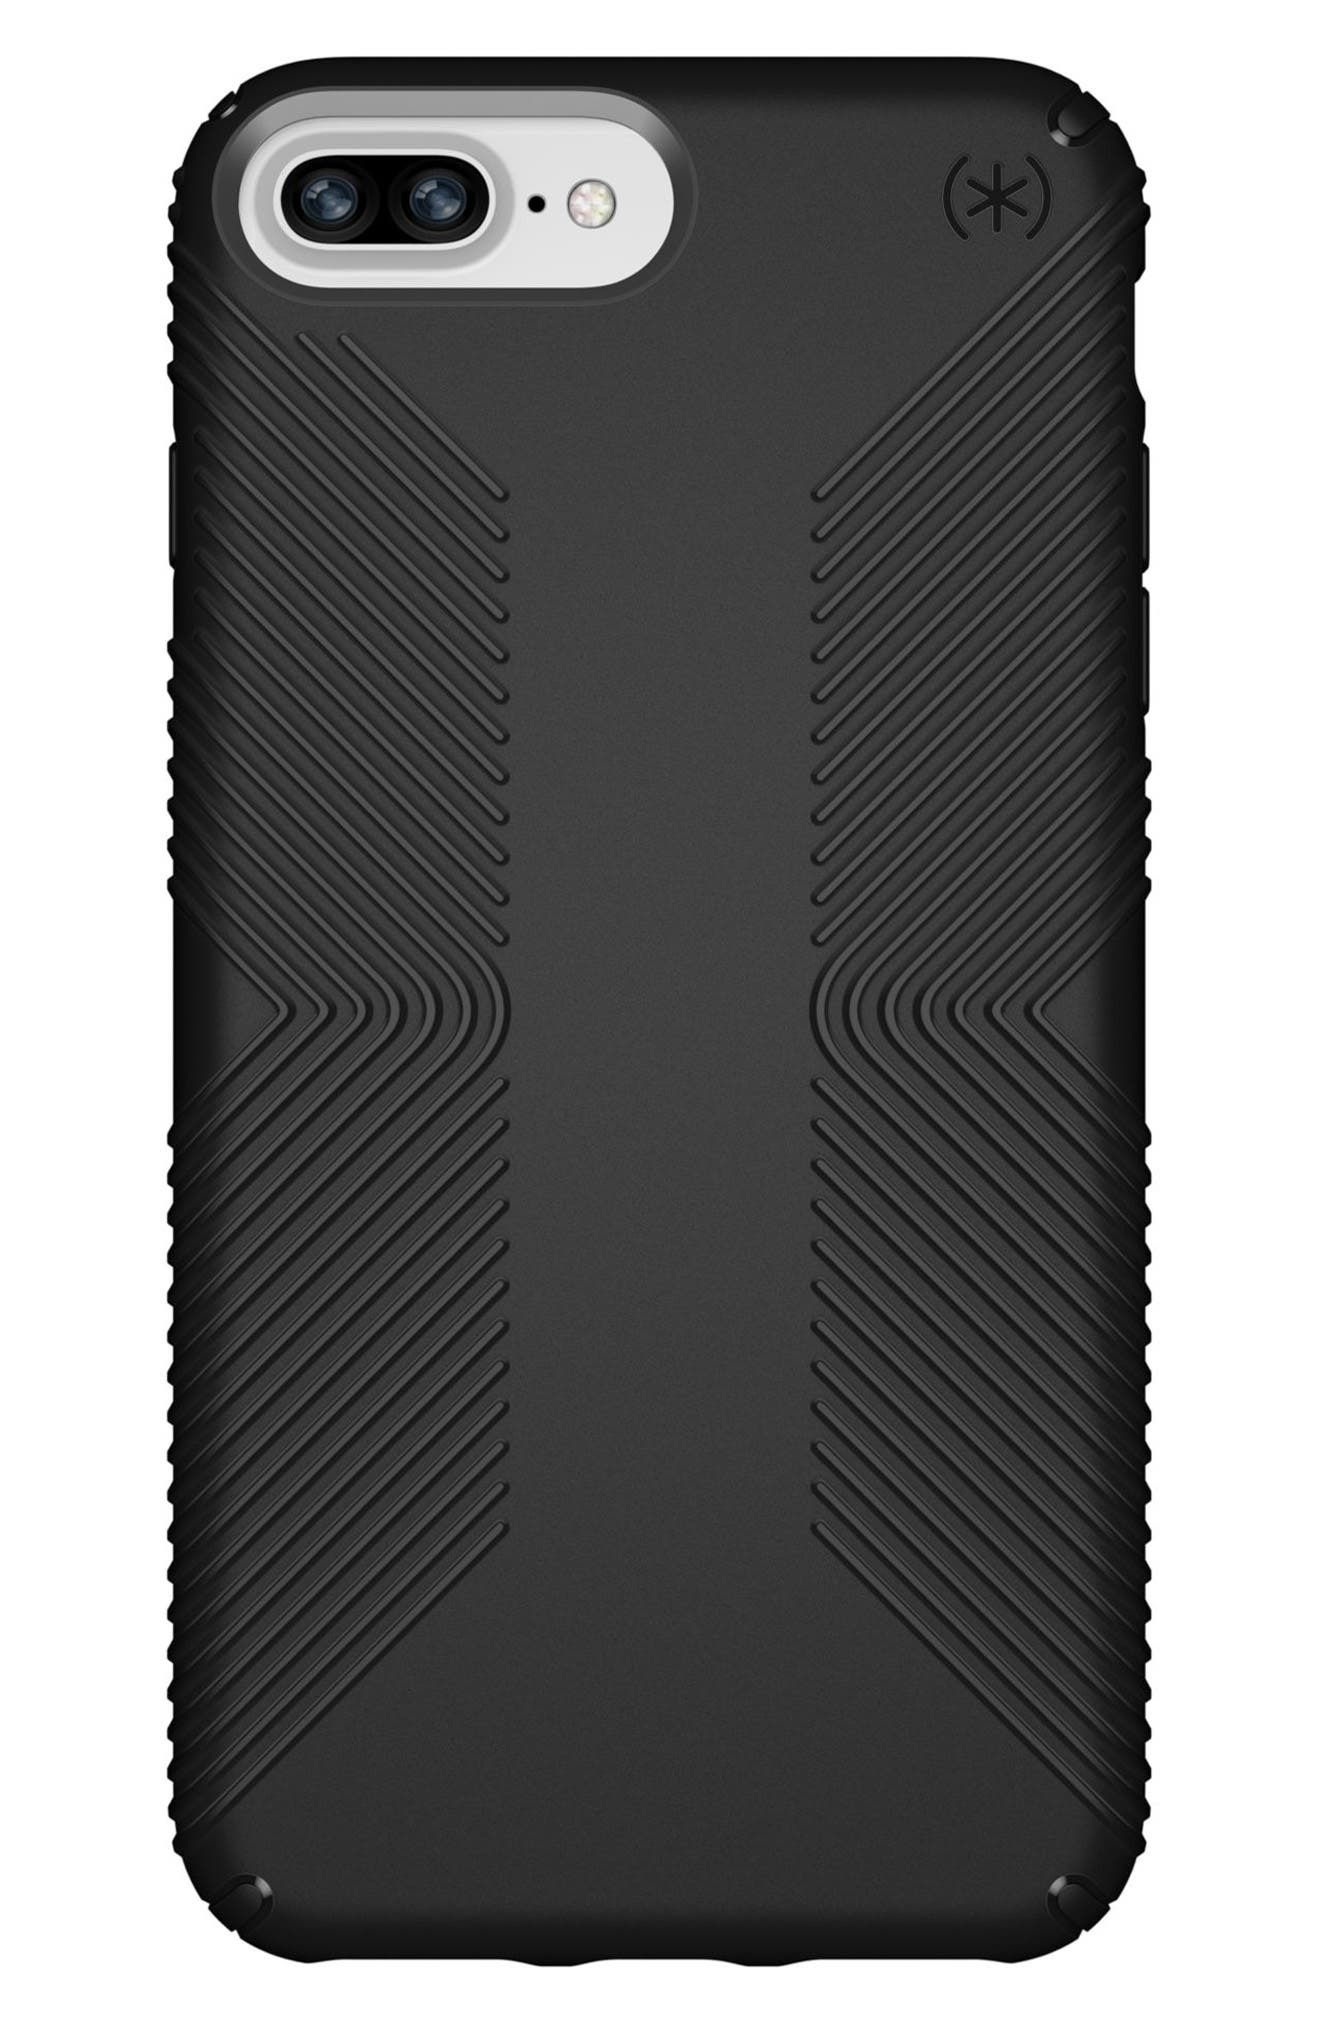 Alternate Image 1 Selected - Speck Grip iPhone 6/6s/7/8 Plus Case